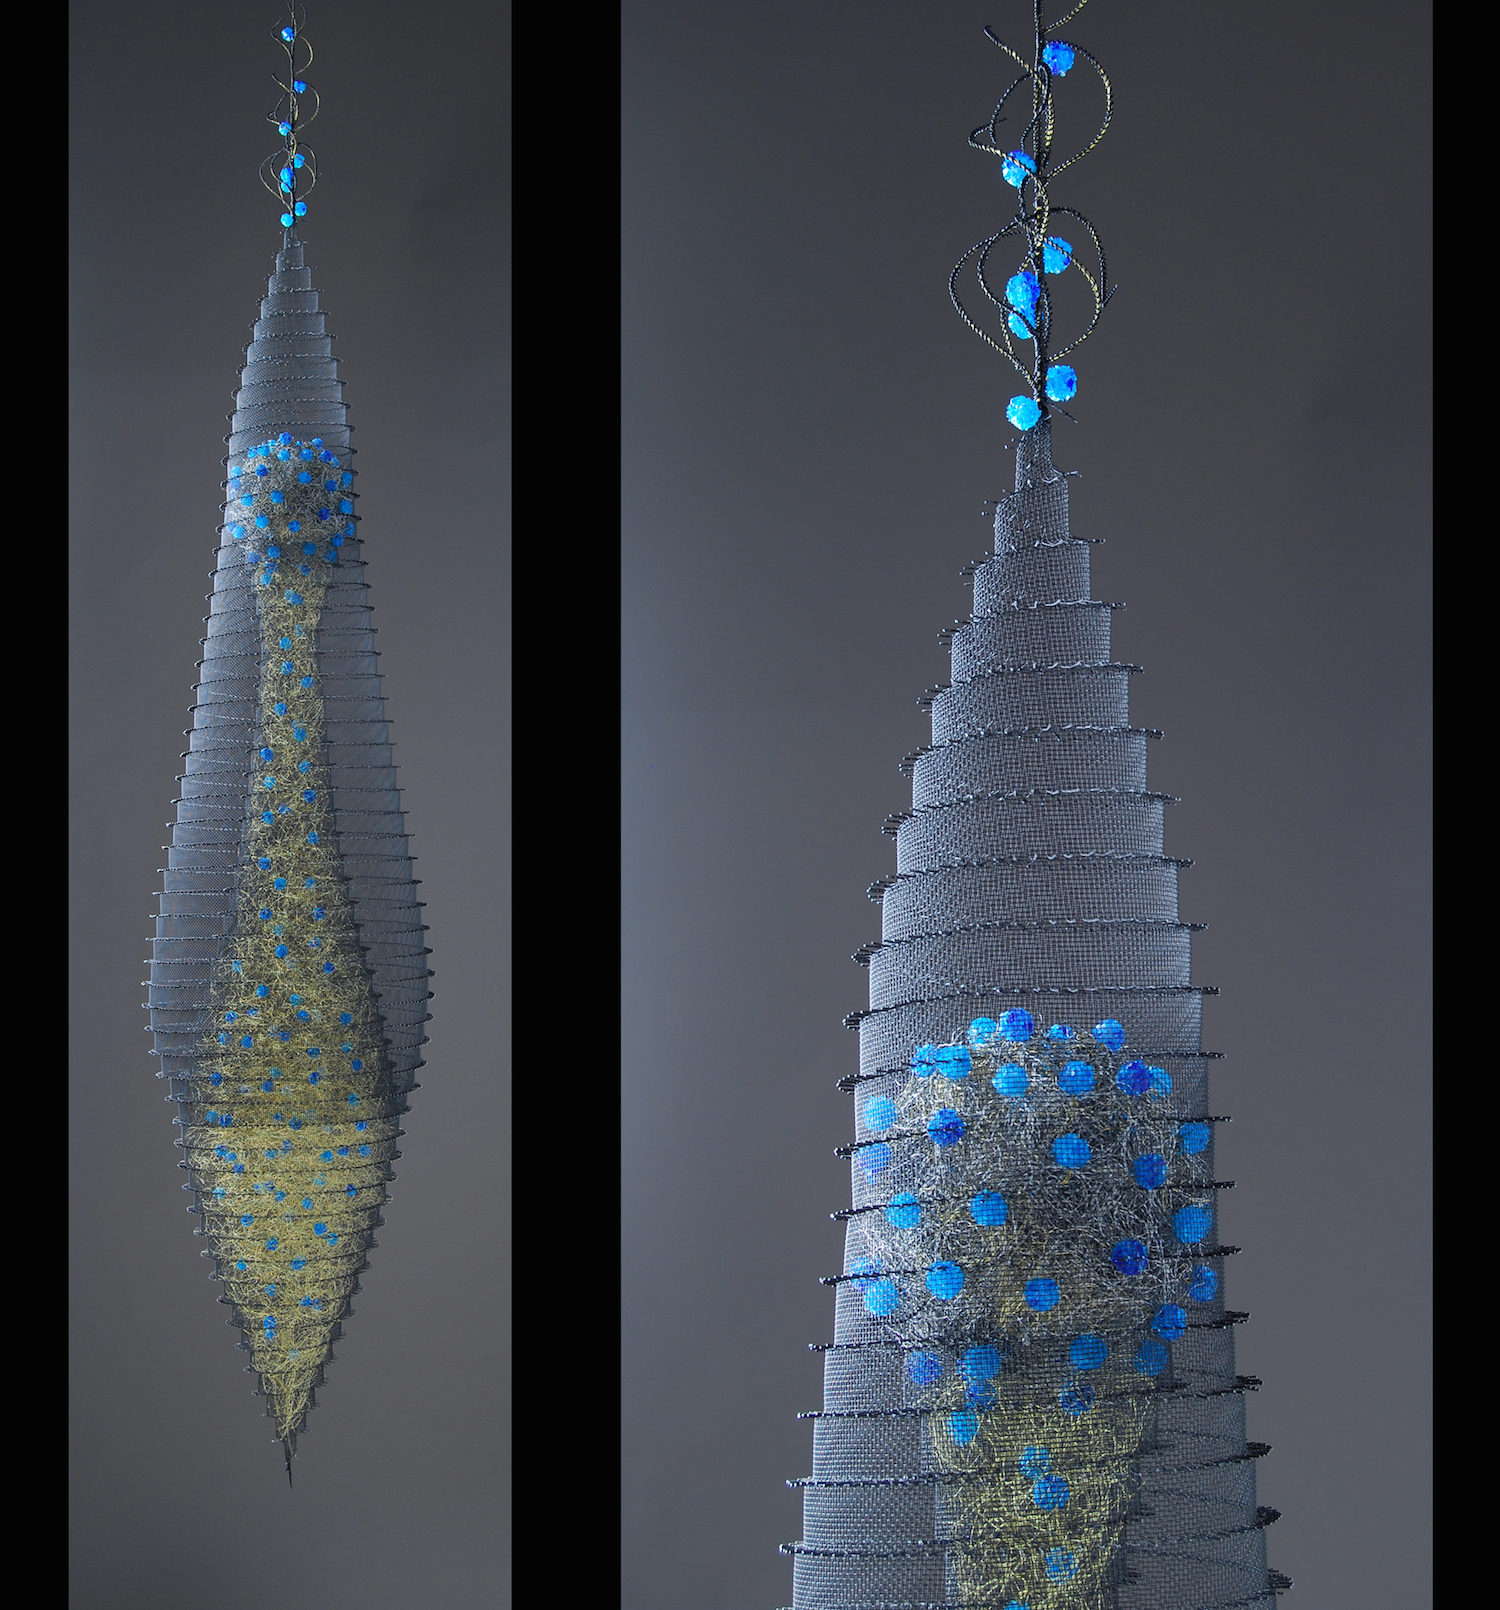 """Blue Elixir"" is one of two suspended works that are in ""Game Changers,"" an exhibition at the Fuller Craft Museum in Brockton, MA. The exhibition runs until November 23, 2014. This piece and ""Teal Elixir"" are part of the museum's permanent collection."